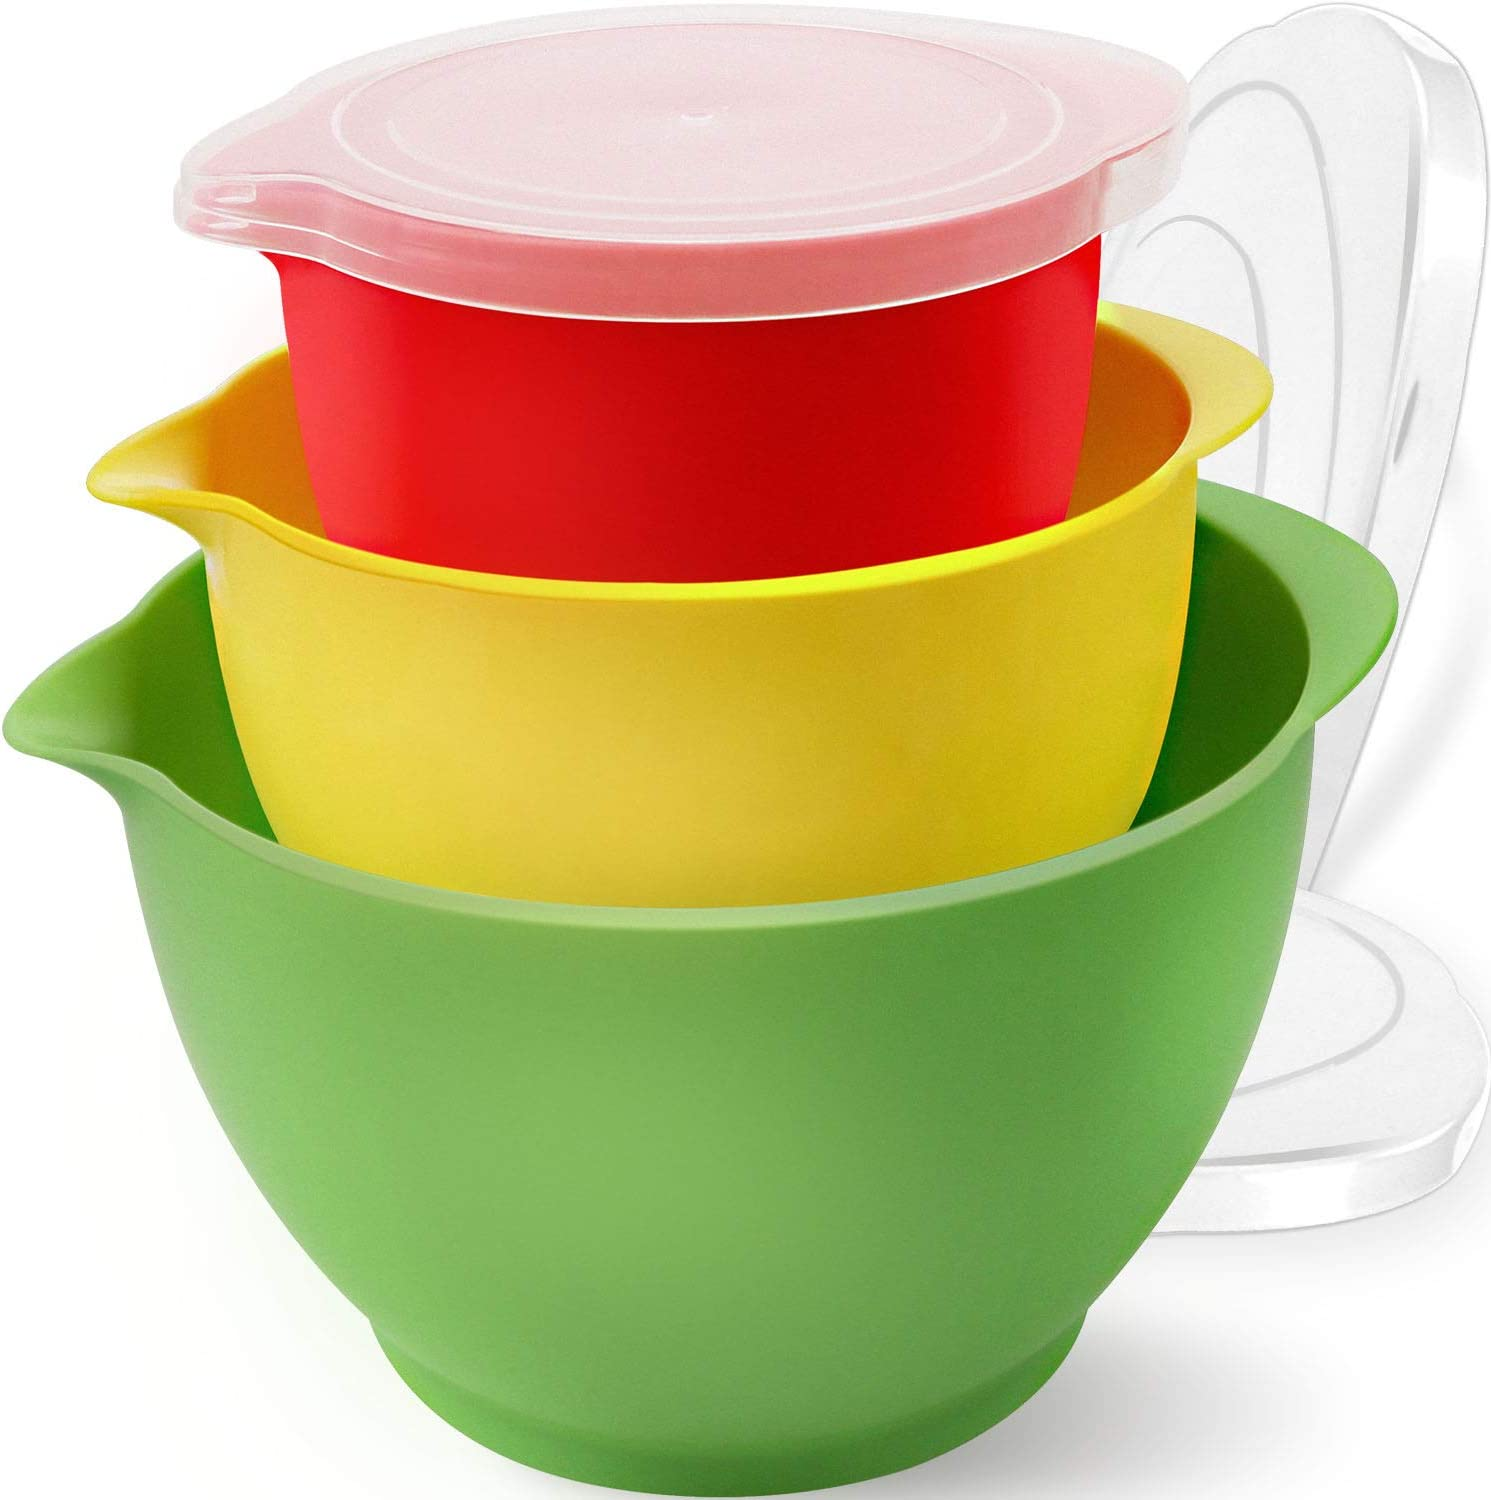 Bokzen Plastic Mixing Bowls with Lids for Kitchen, 3 Set Colorful Stackable Mixing Bowl Prep Bowls with Pour Spout for Cooking Serving Salads, Snack, Fruits, Food Storage -Dishwasher Safe, BPA free